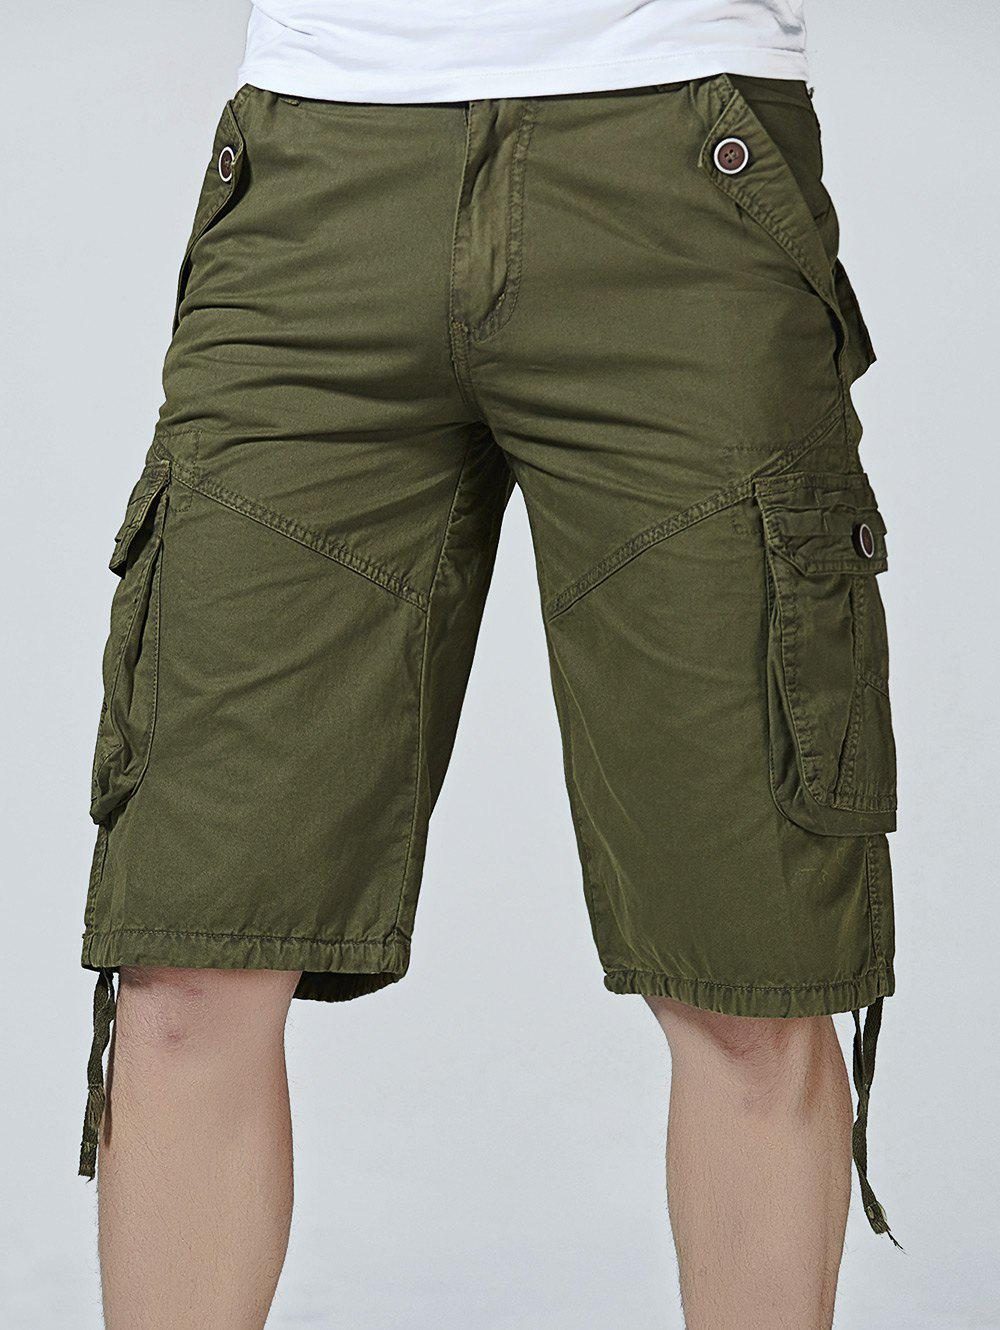 Buy Drawstring Design Zipper Fly Cargo Shorts with Pockets